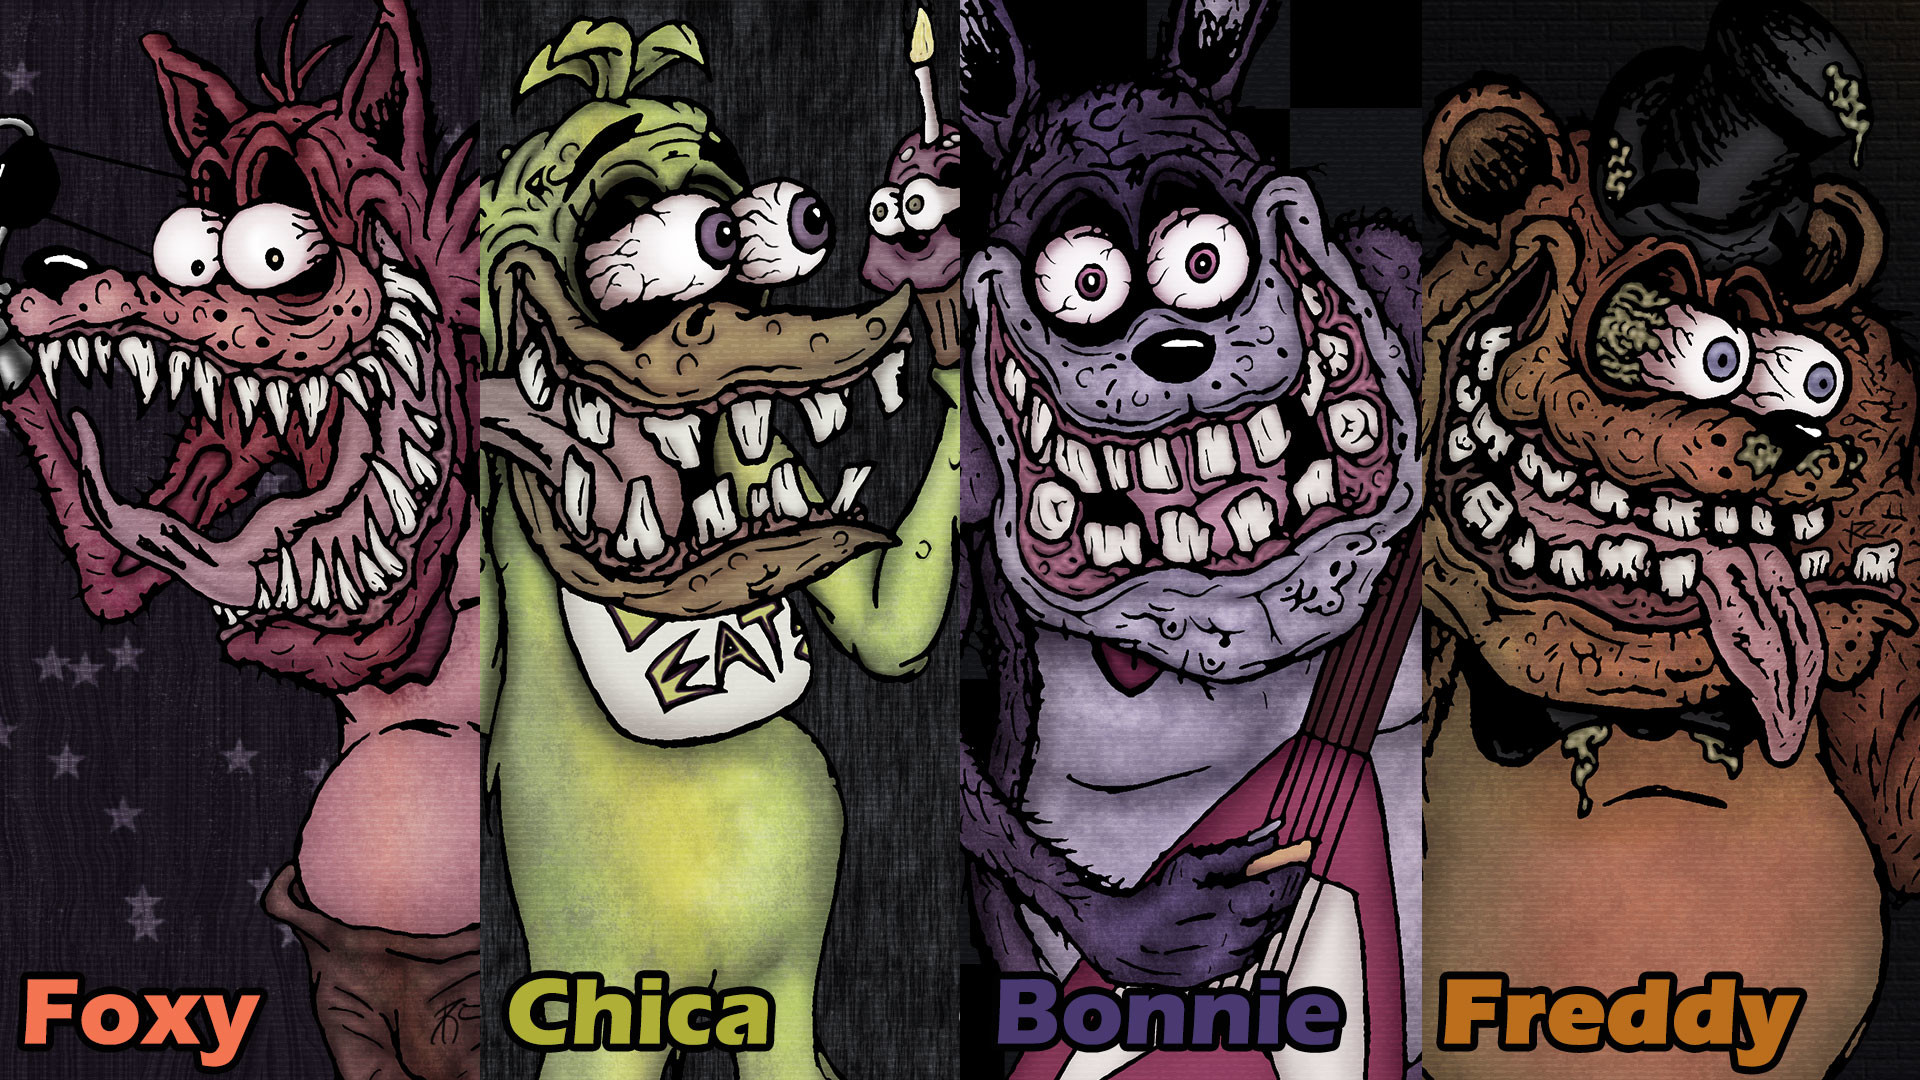 1920x1080 ... Five Nights at Freddy - Ed Roth Style (Wallpaper) by SestrenNK